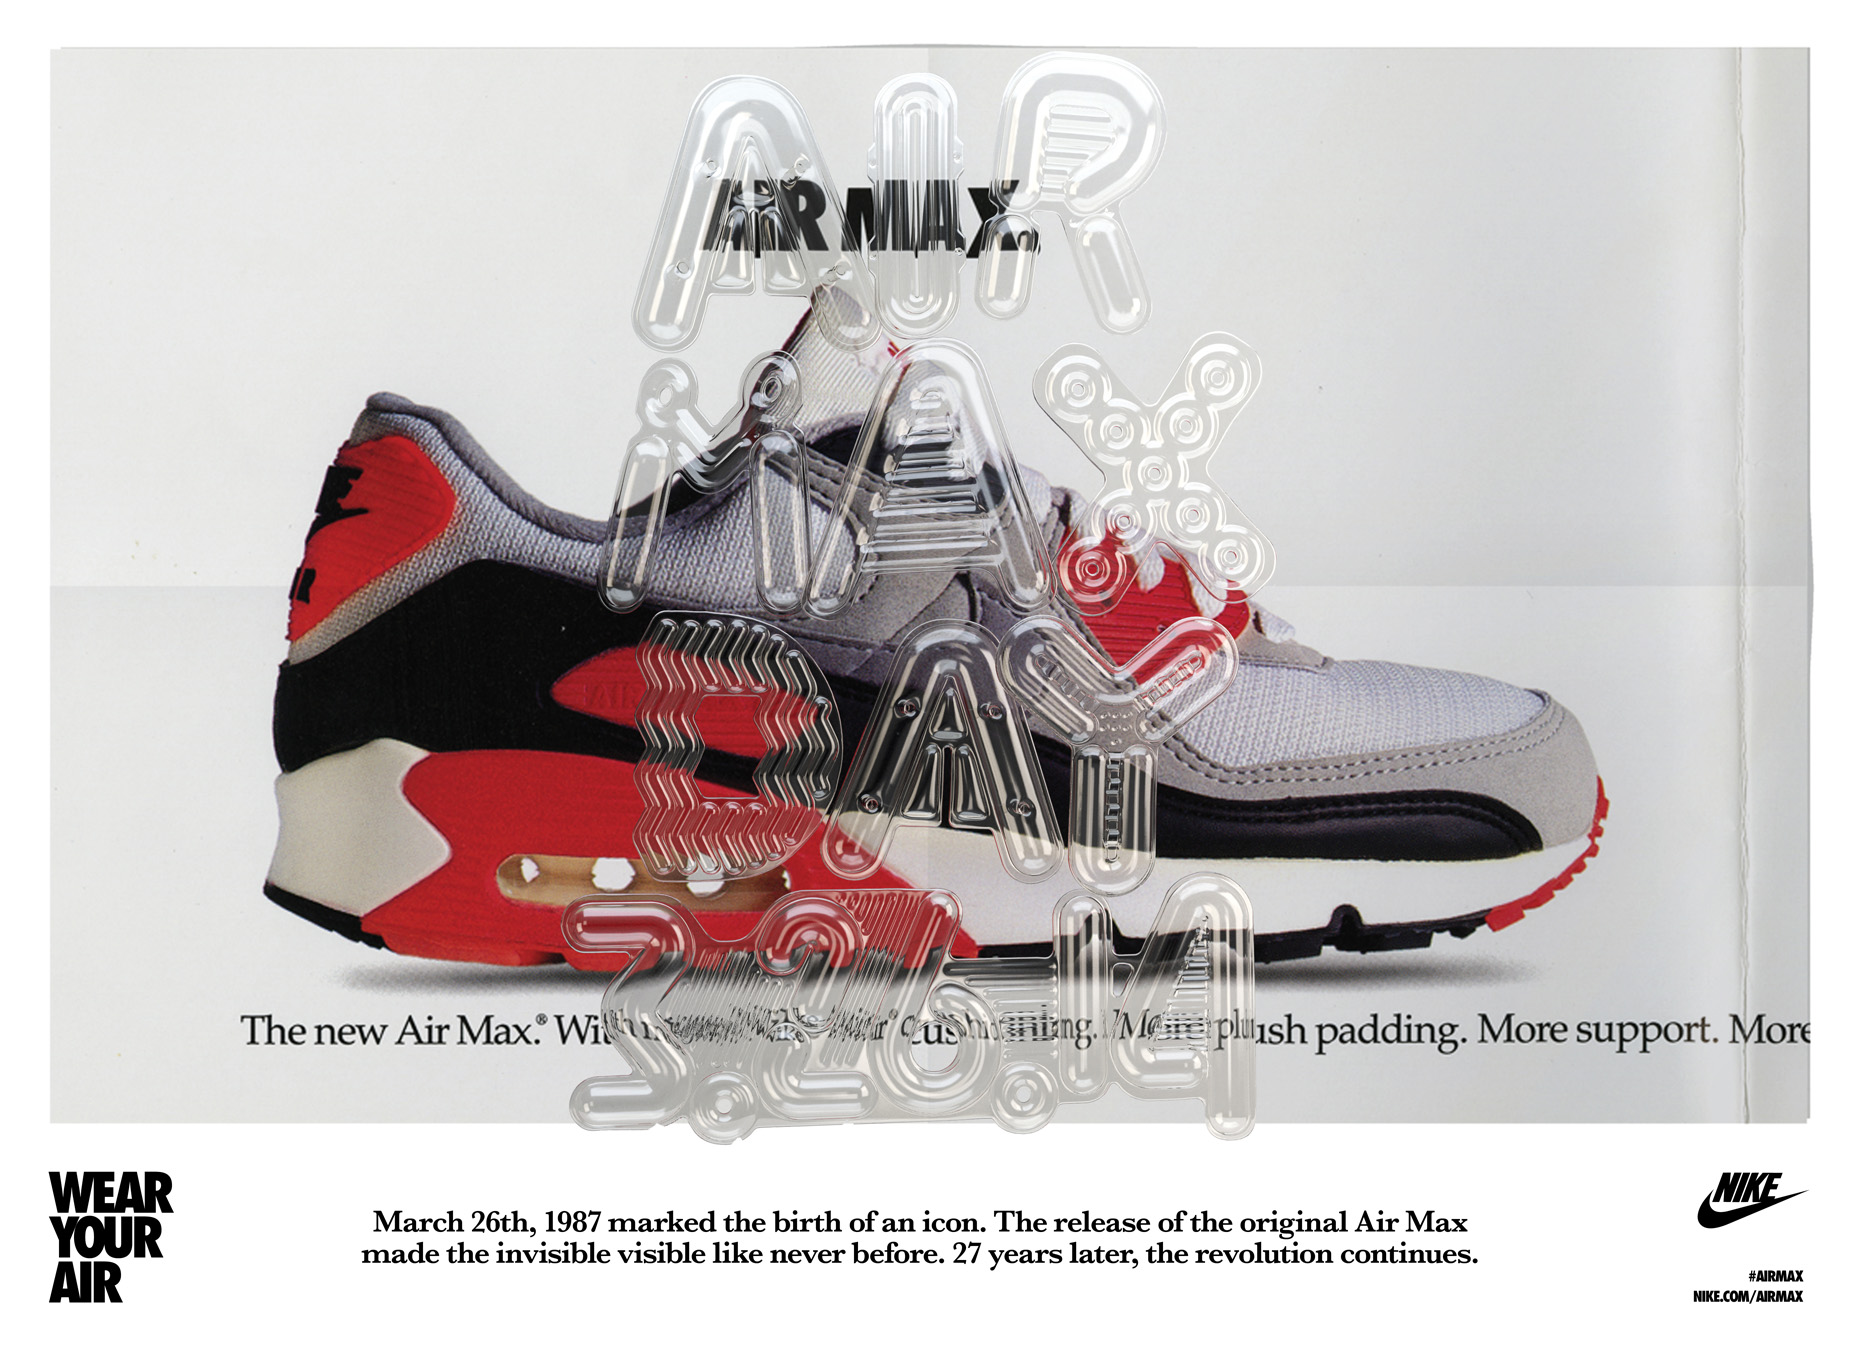 Airmax90_SP14_NSW_AIRMAXDAY_HERO_AM90_USA